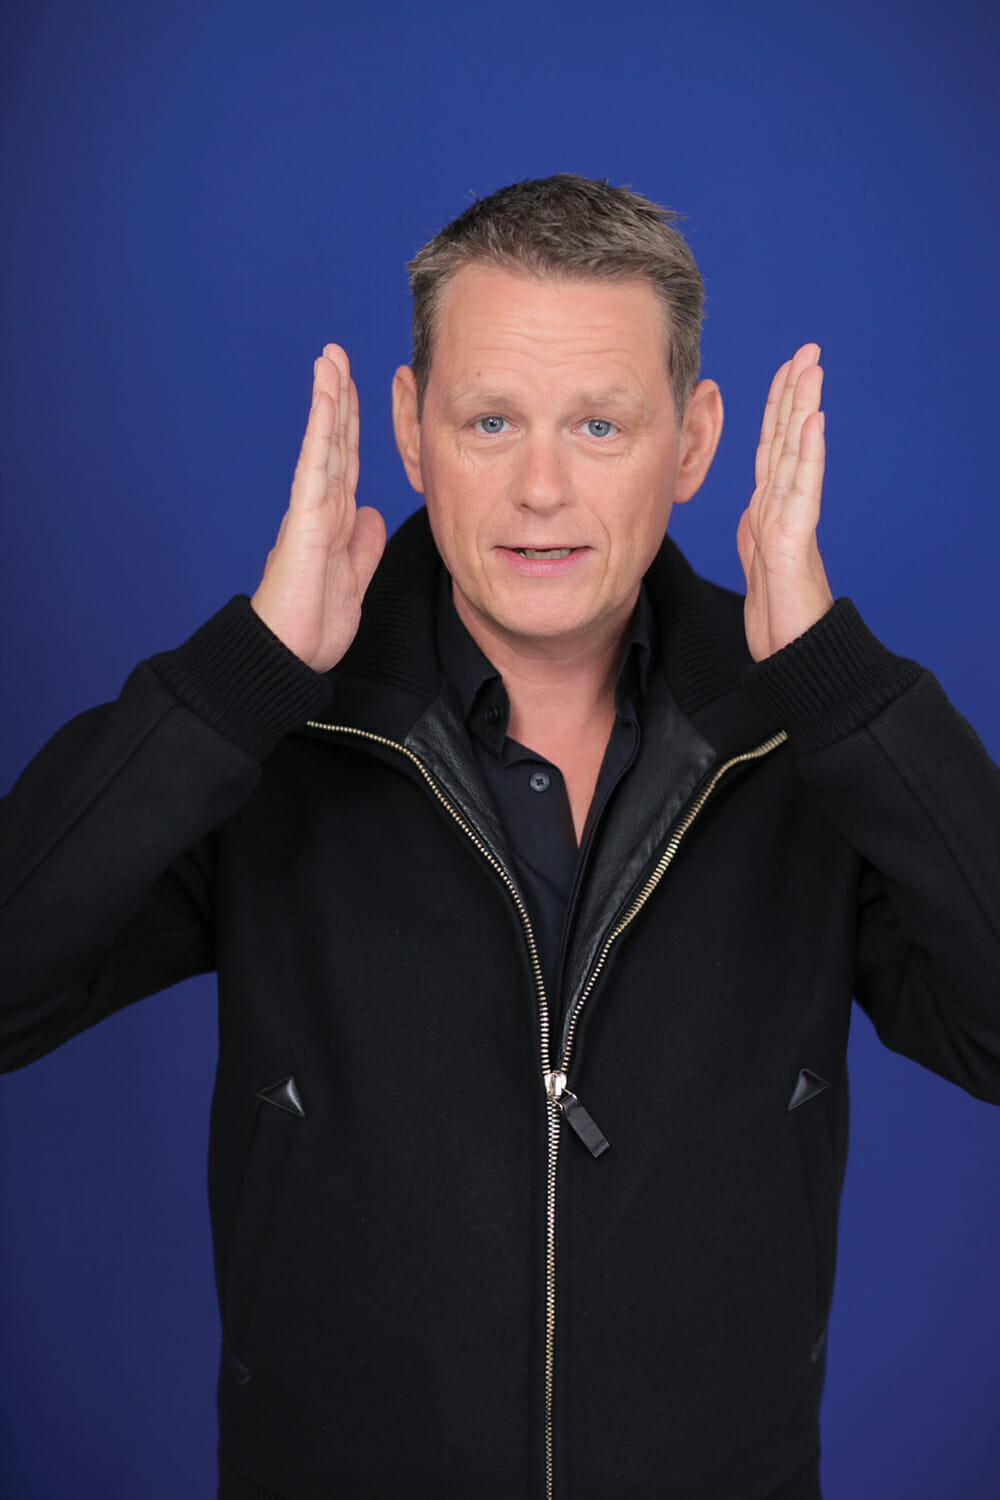 Martin Lindstrom portrait with blue background - Photo Library